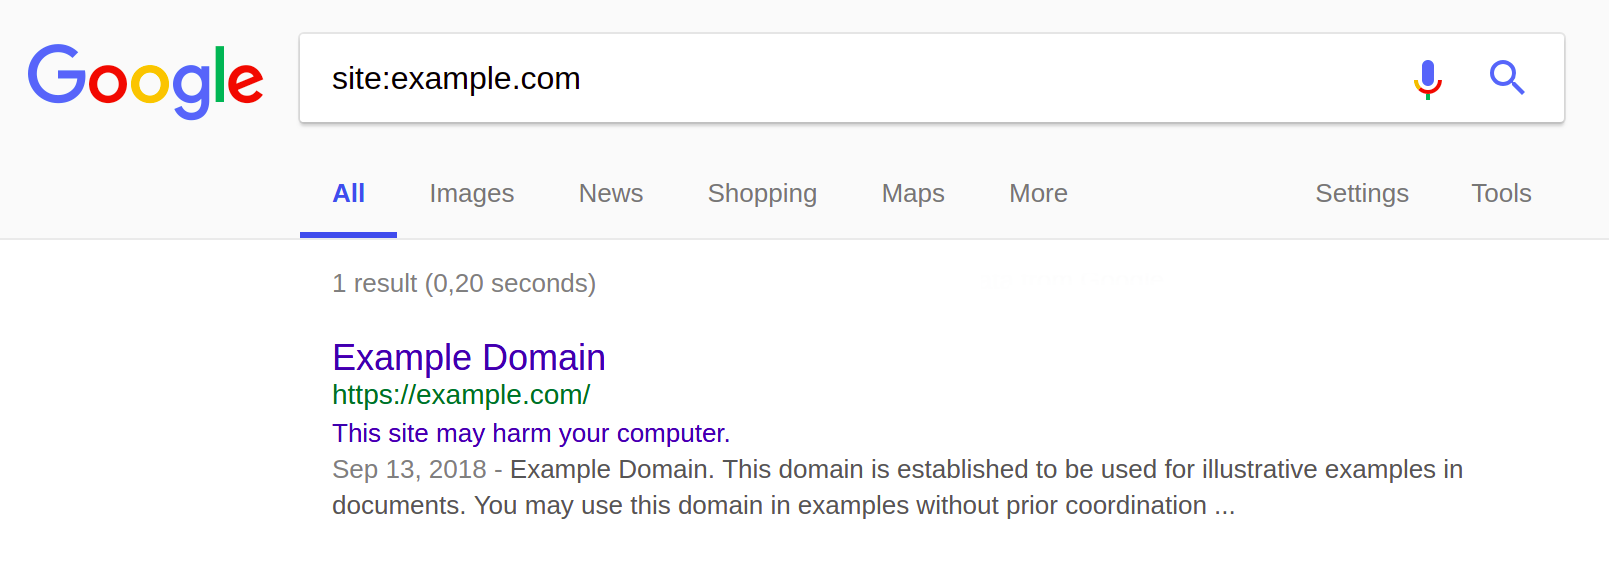 SearchBrothers.com-Compromised-Site-SERP-Warning